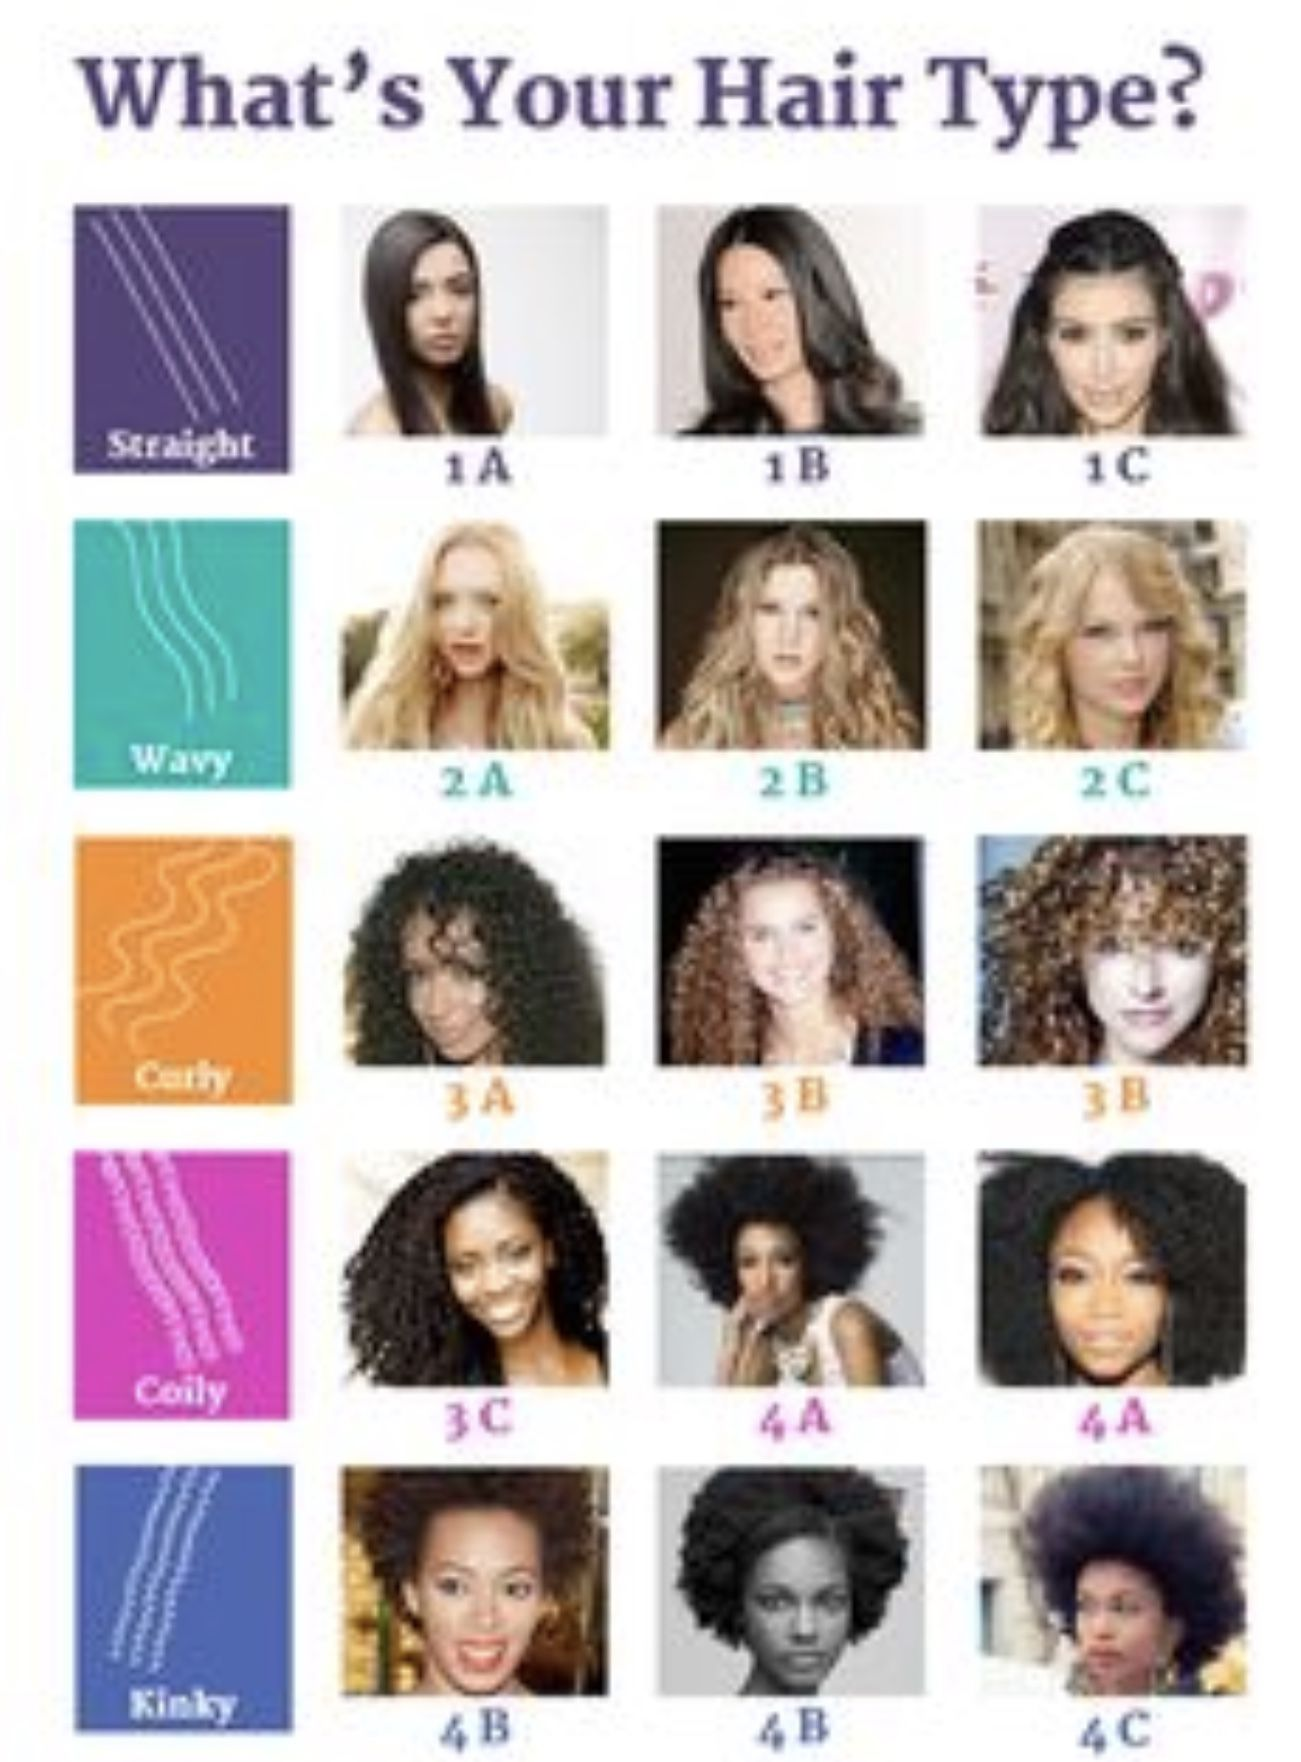 Pin By Uwuadrii On In Case I Have No Ideas Hair Type Curly Hair Types Curly Hair Beauty